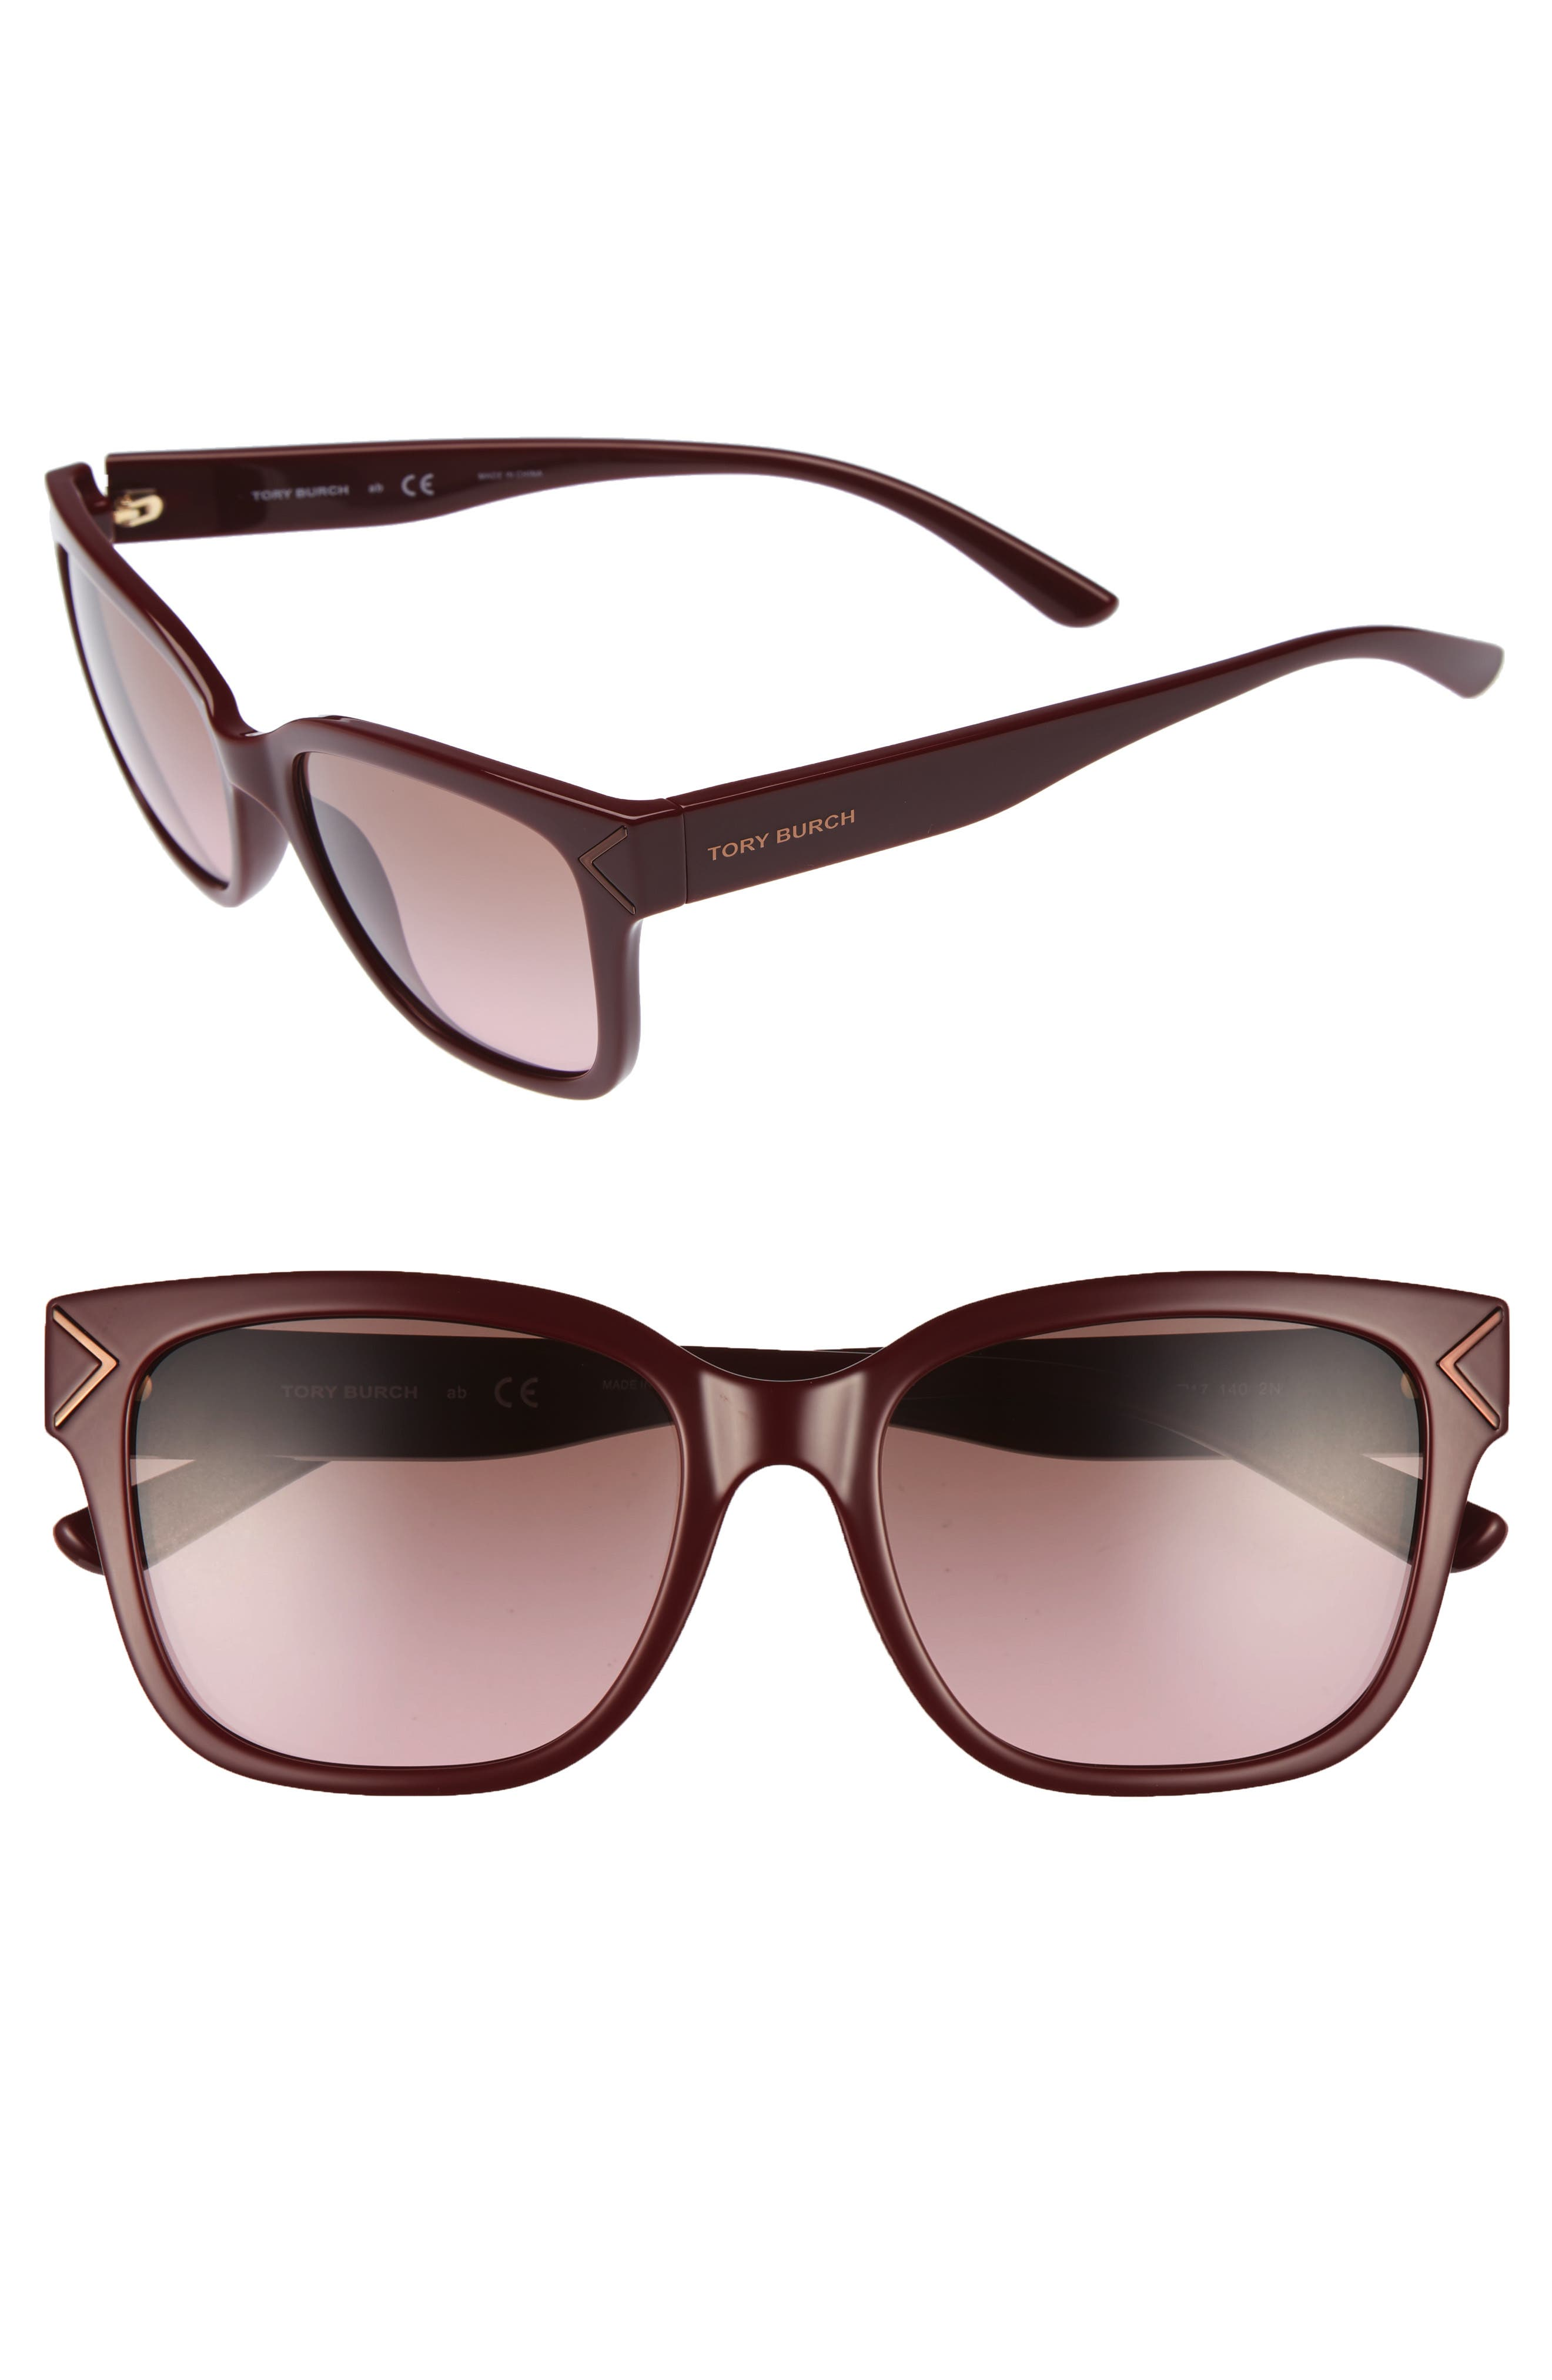 Alternate Image 1 Selected - Tory Burch 55mm Gradient Sunglasses